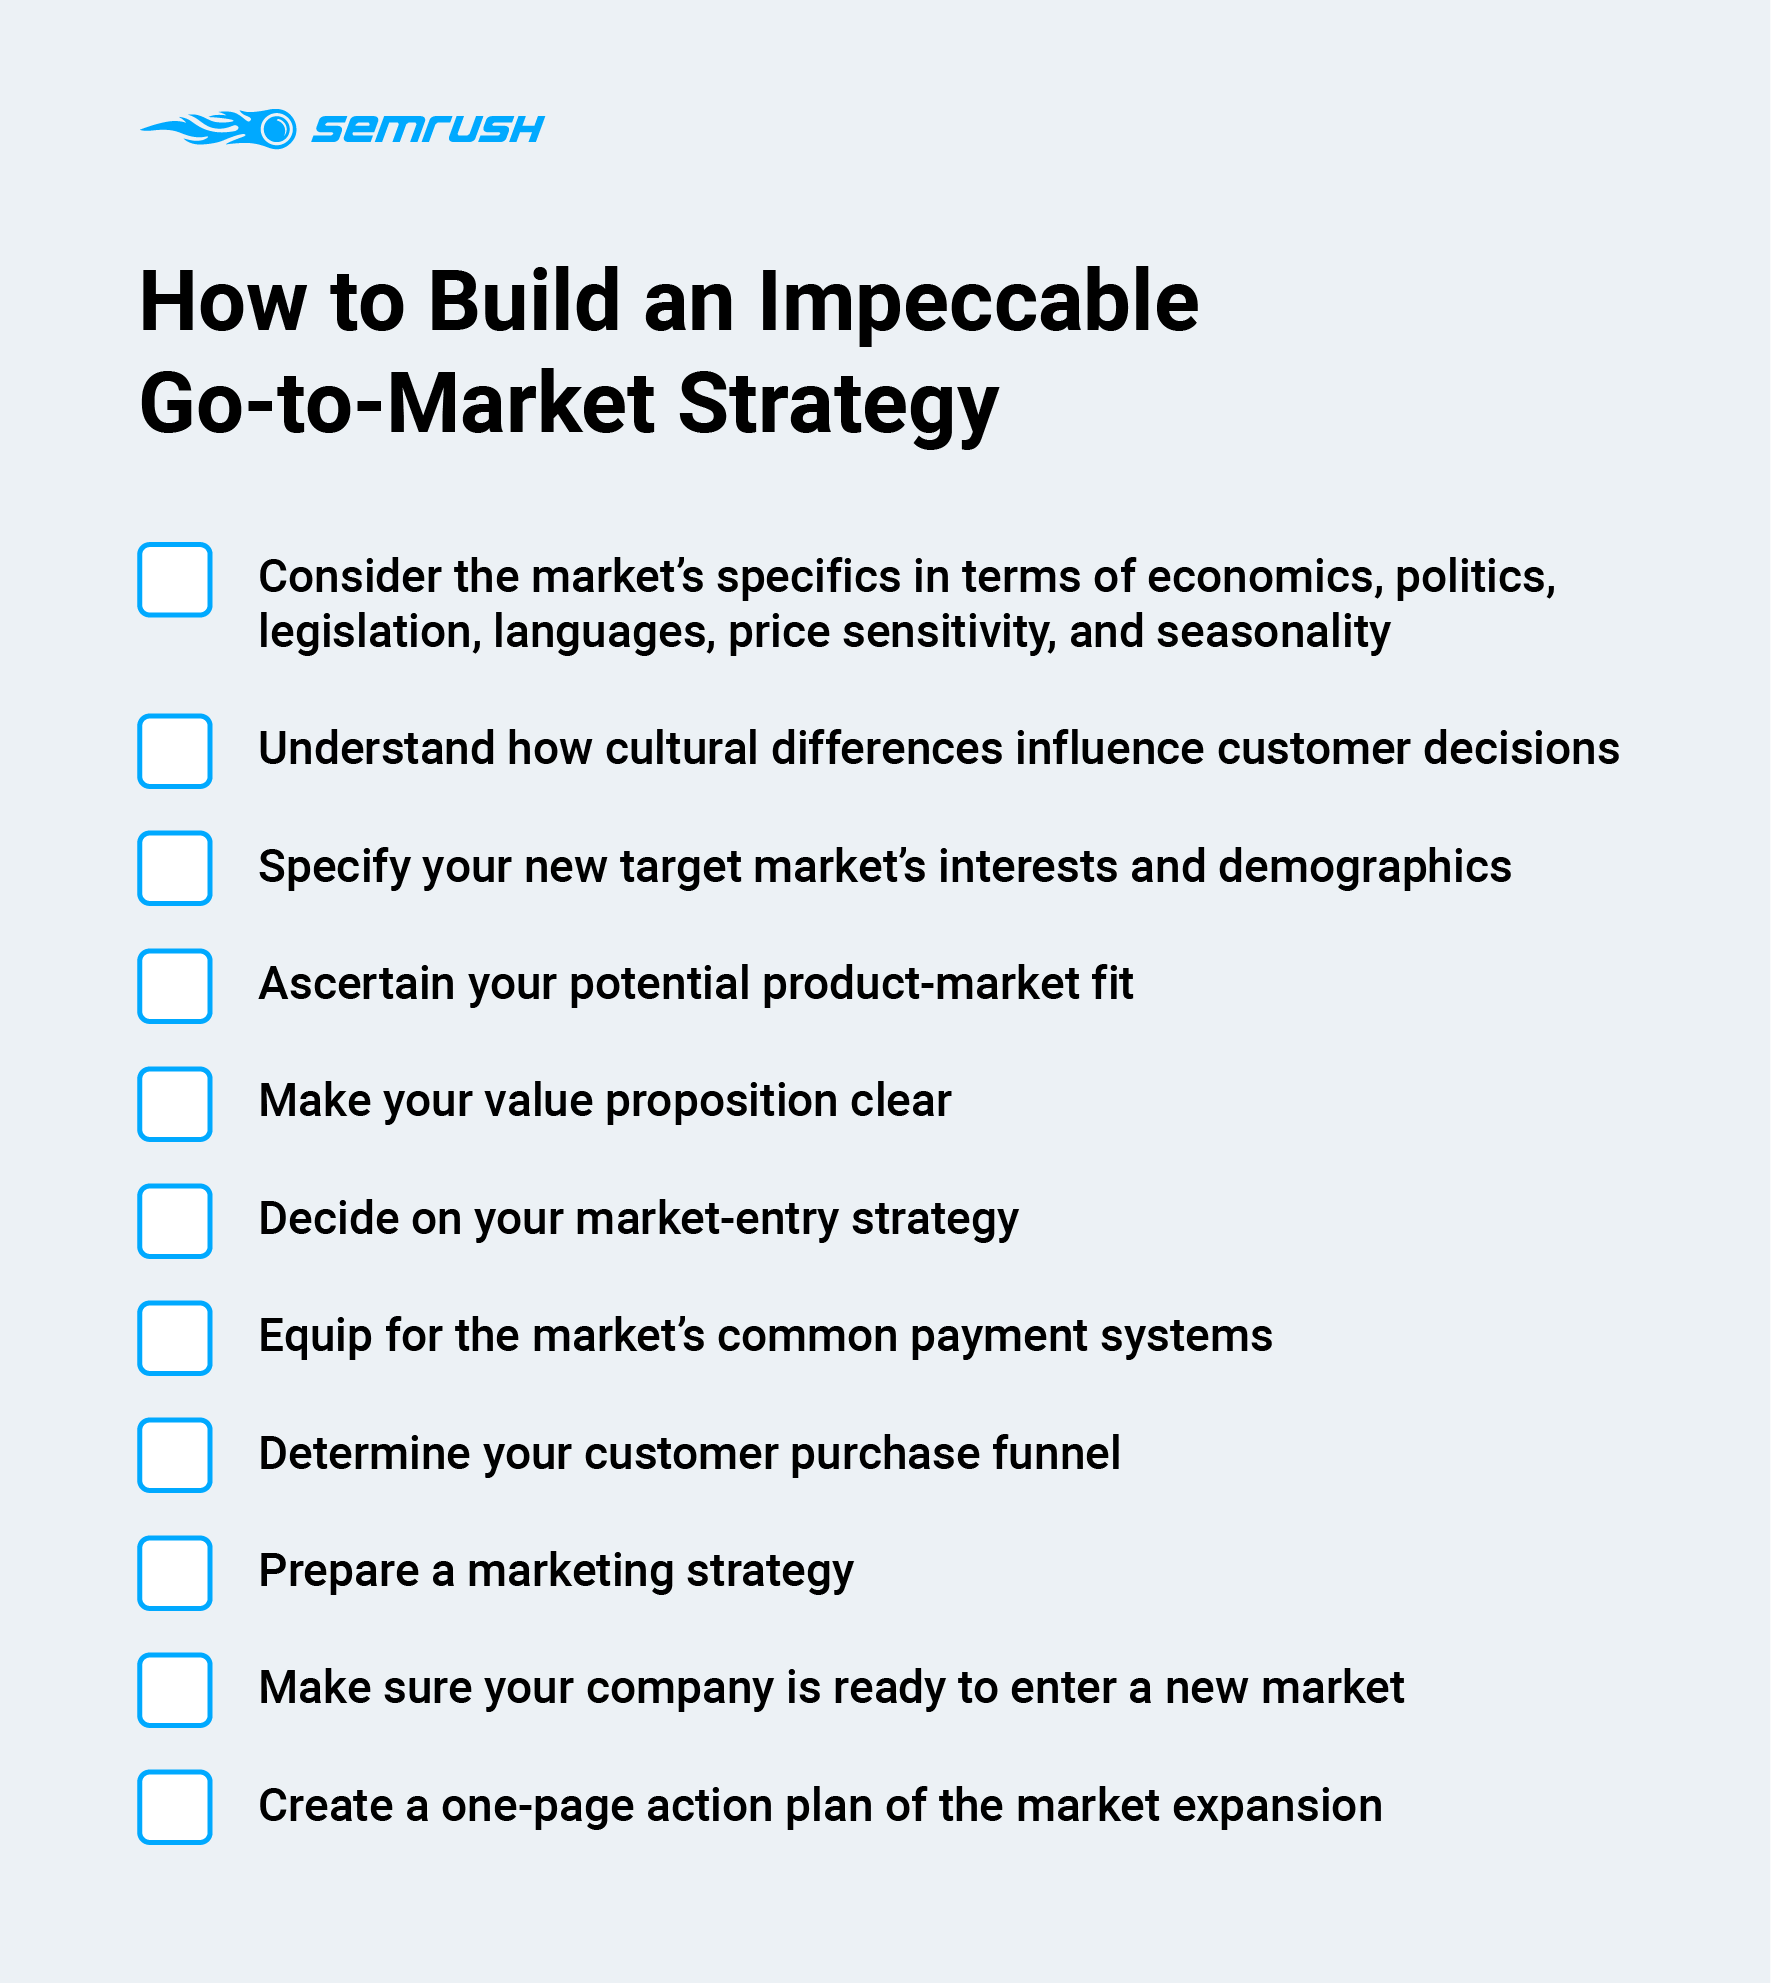 Go-to-Market Strategy Checklist